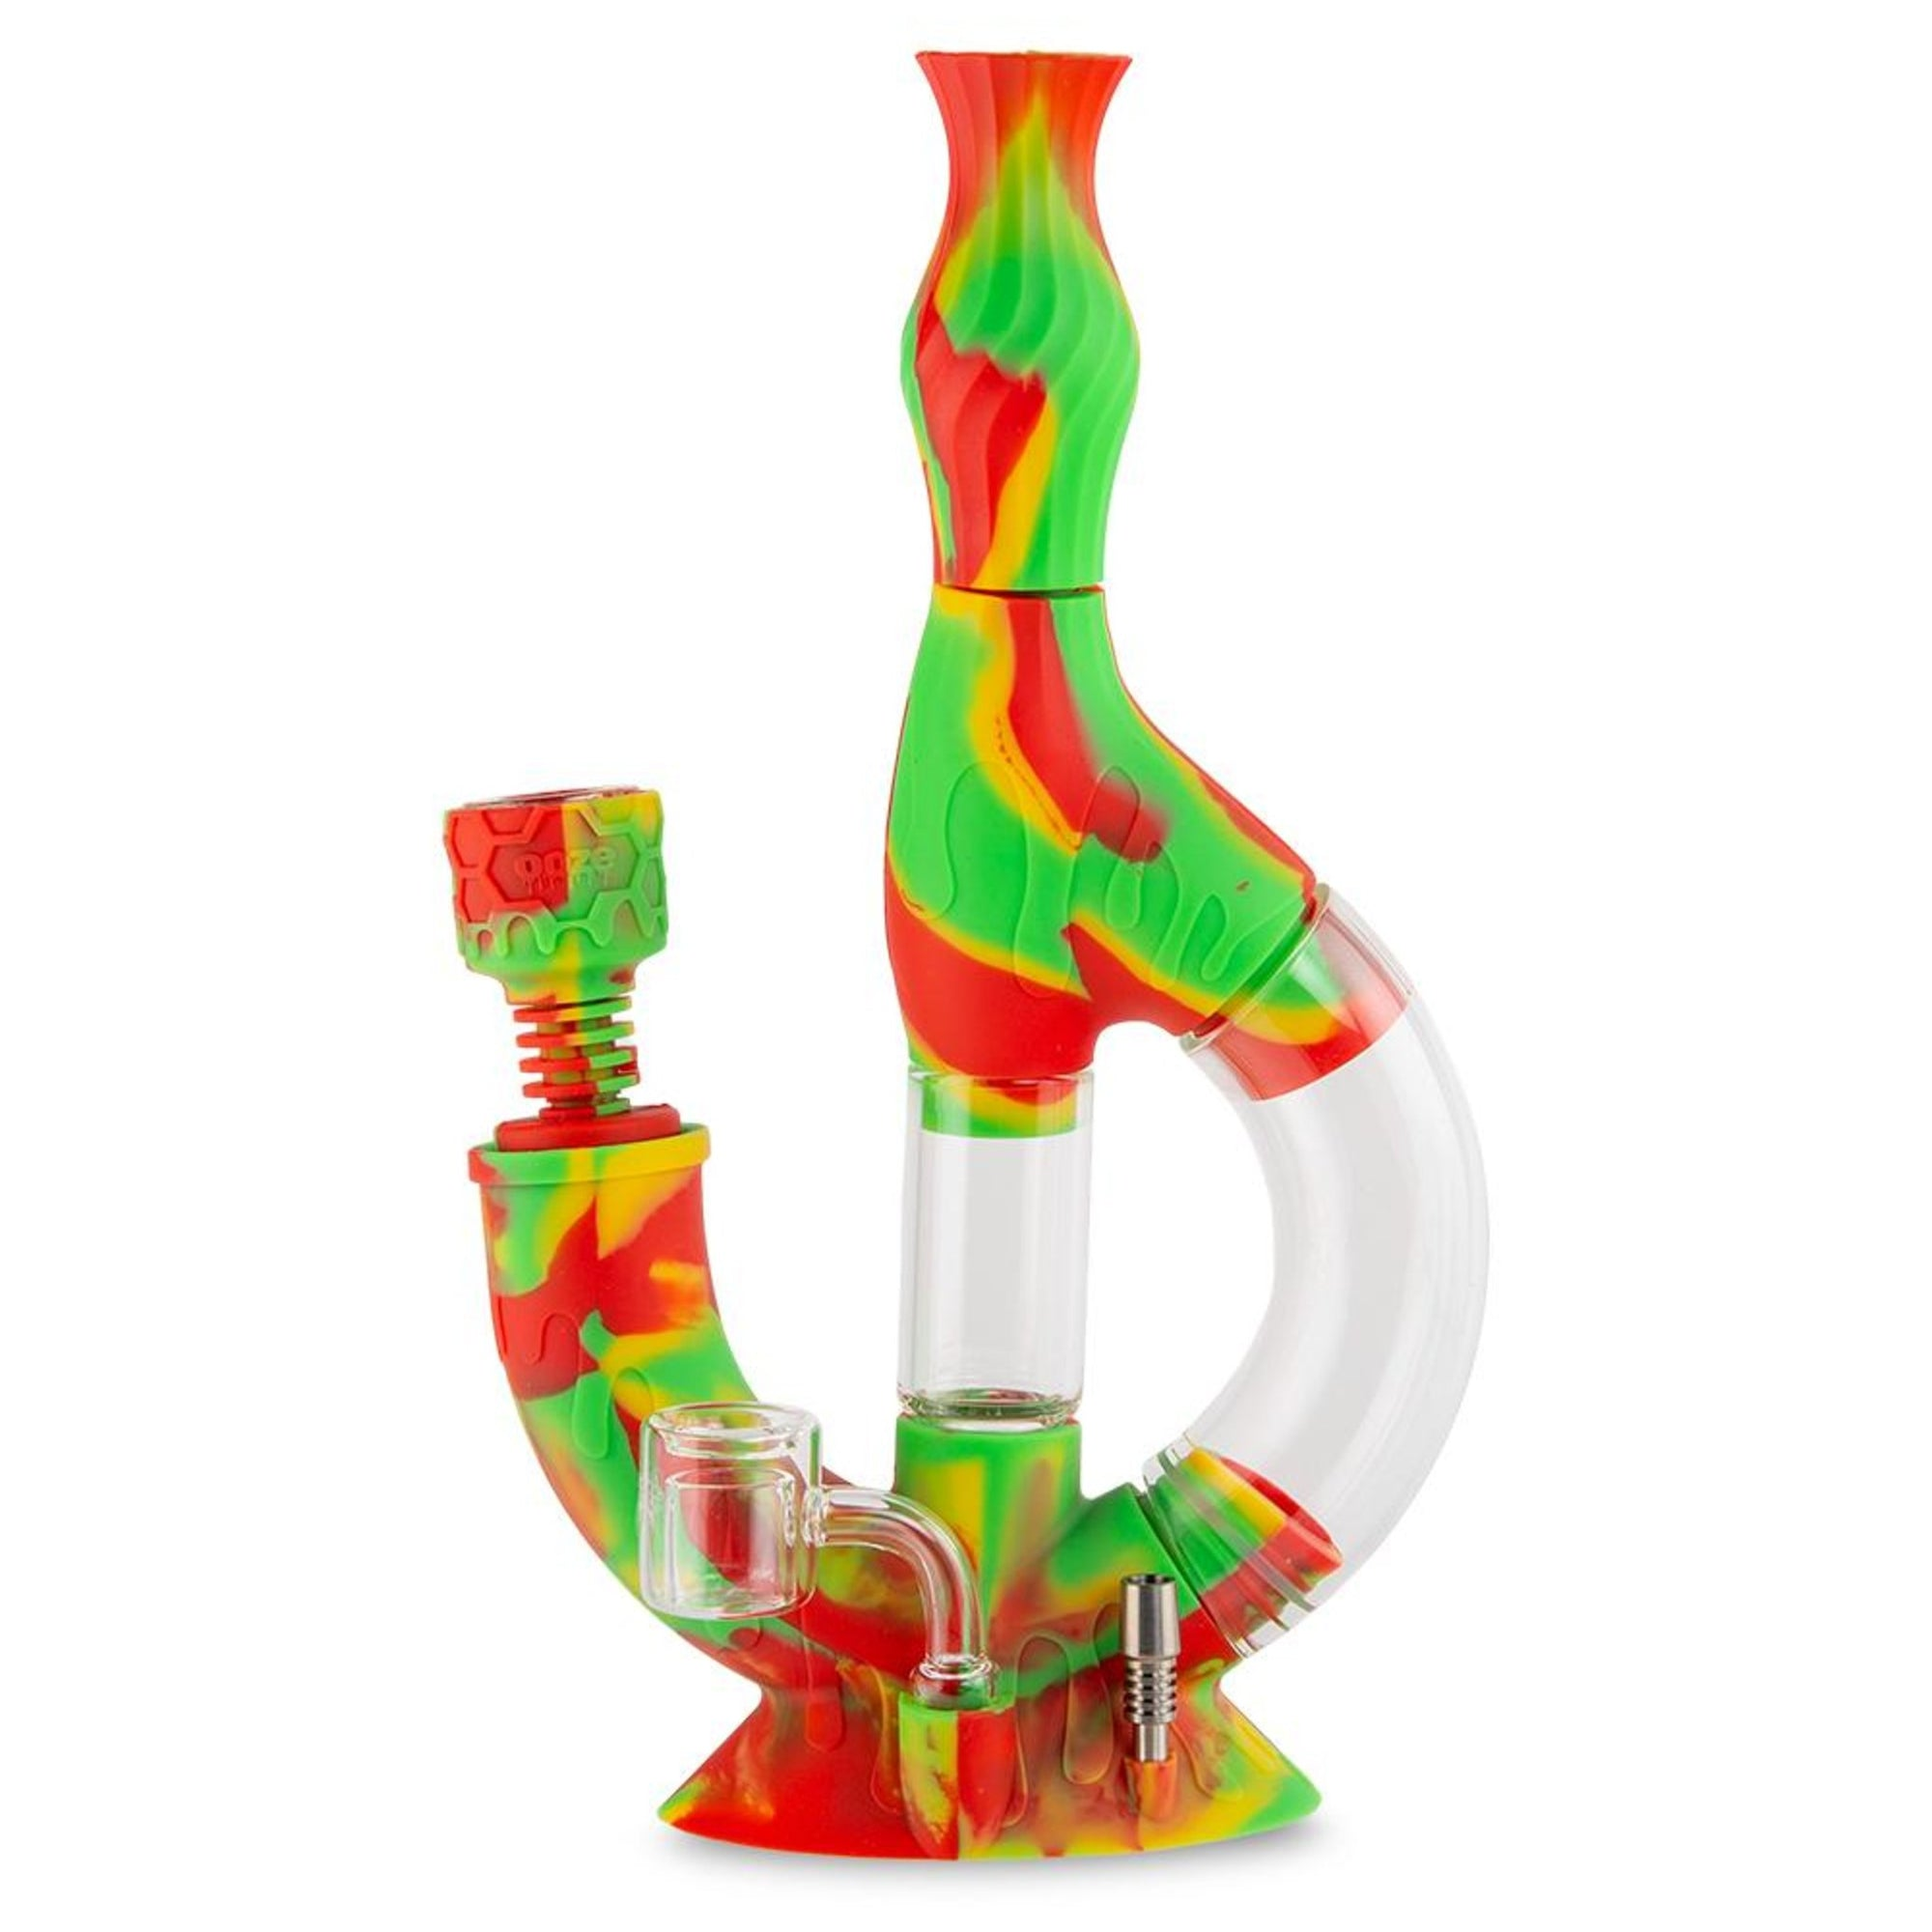 Ooze Echo 4-in-1 Silicone Water Pipe n Nectar Collector - 11in